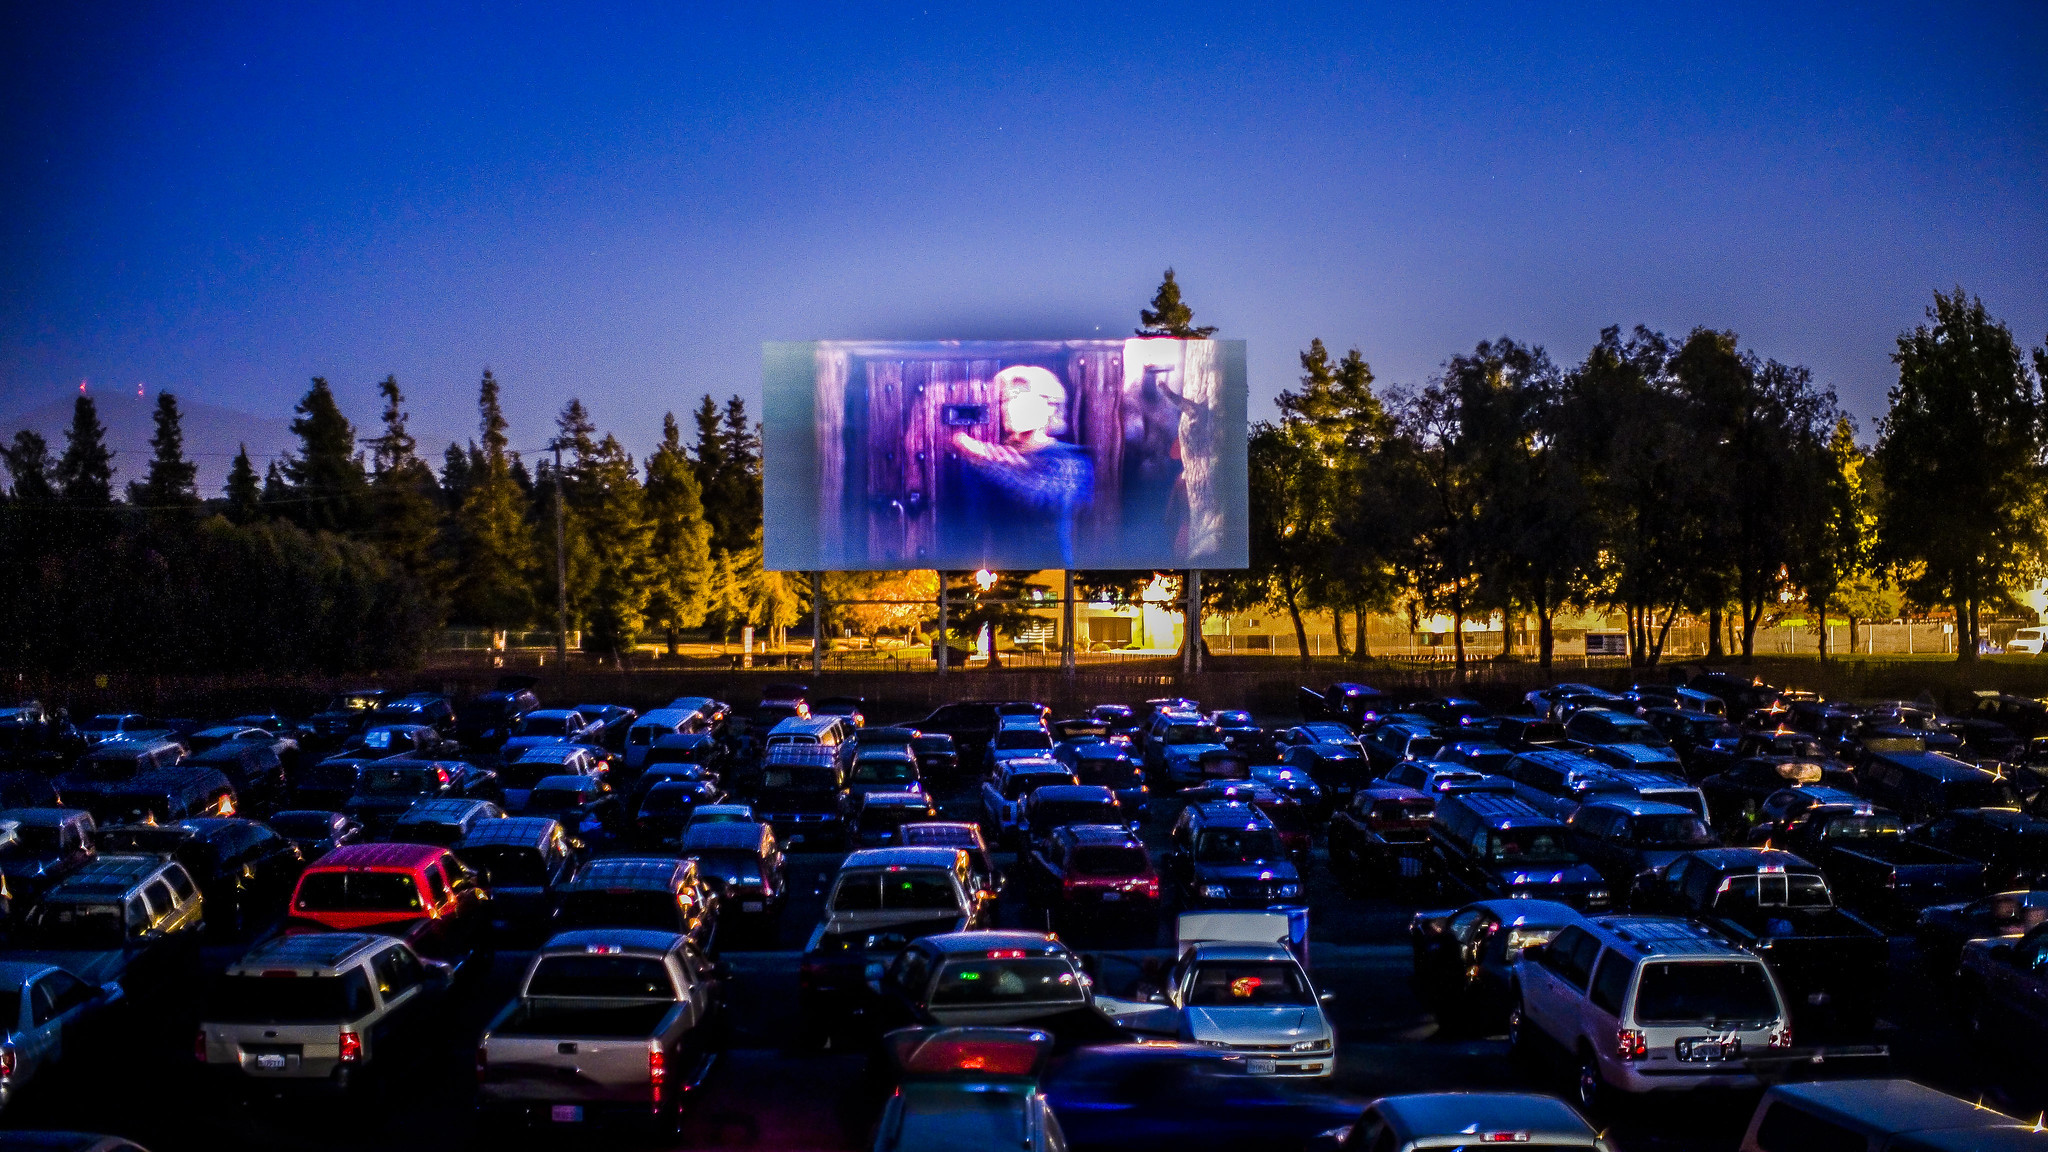 Generic drive in cinema image